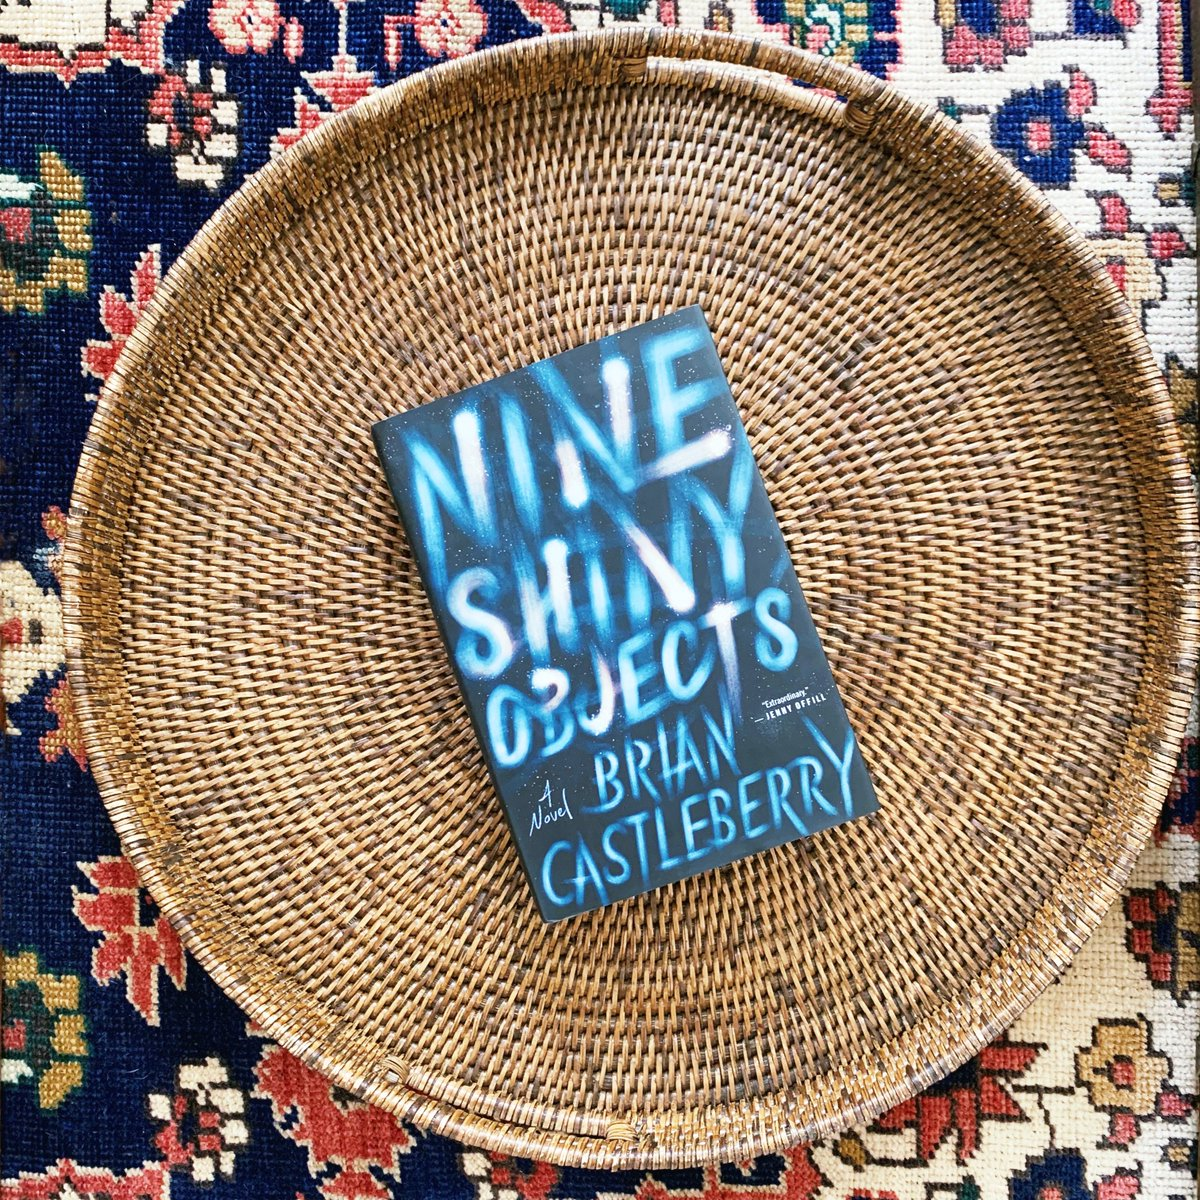 Nine Shiny Objects is on shelves today! @briancastleber5's debut is one you won't want to miss and is perfect for fans of Jennifer Egan, Tommy Orange, and Don DeLillo.